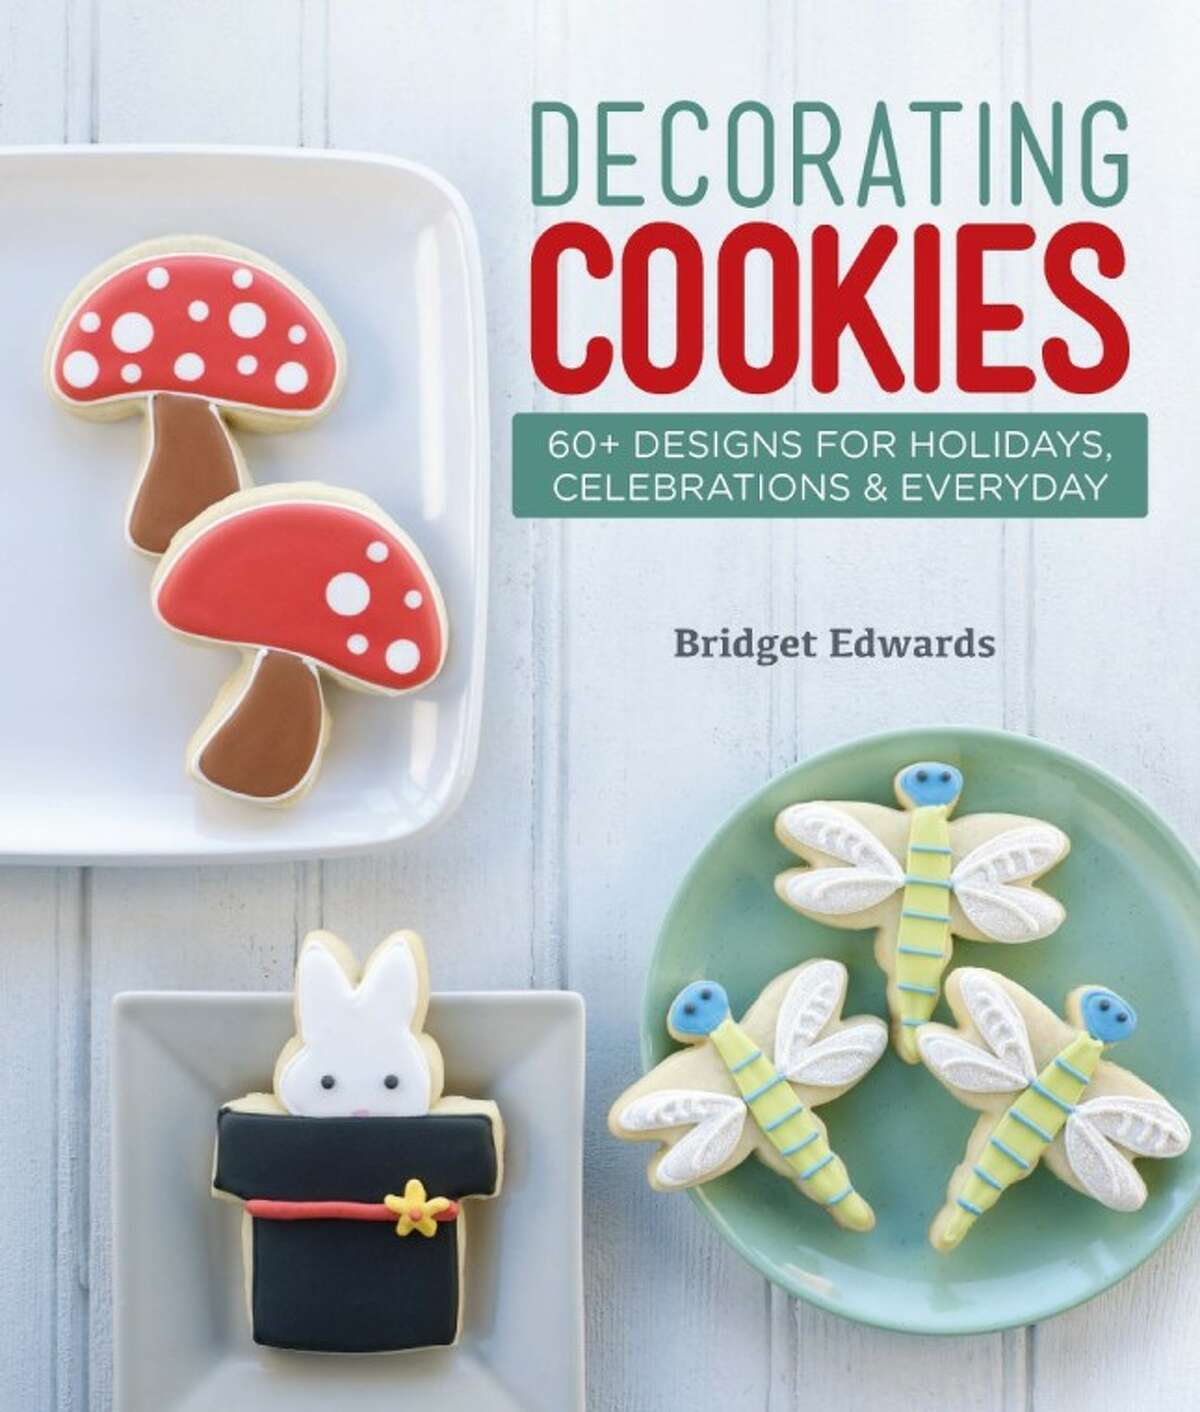 Bridget Edwards has recently released her book Decorating Cookies: 60+ Designs for Holidays, Celebrations & Everyday, which teaches fun and straightforward approaches to creating unique and great-tasting cookies.